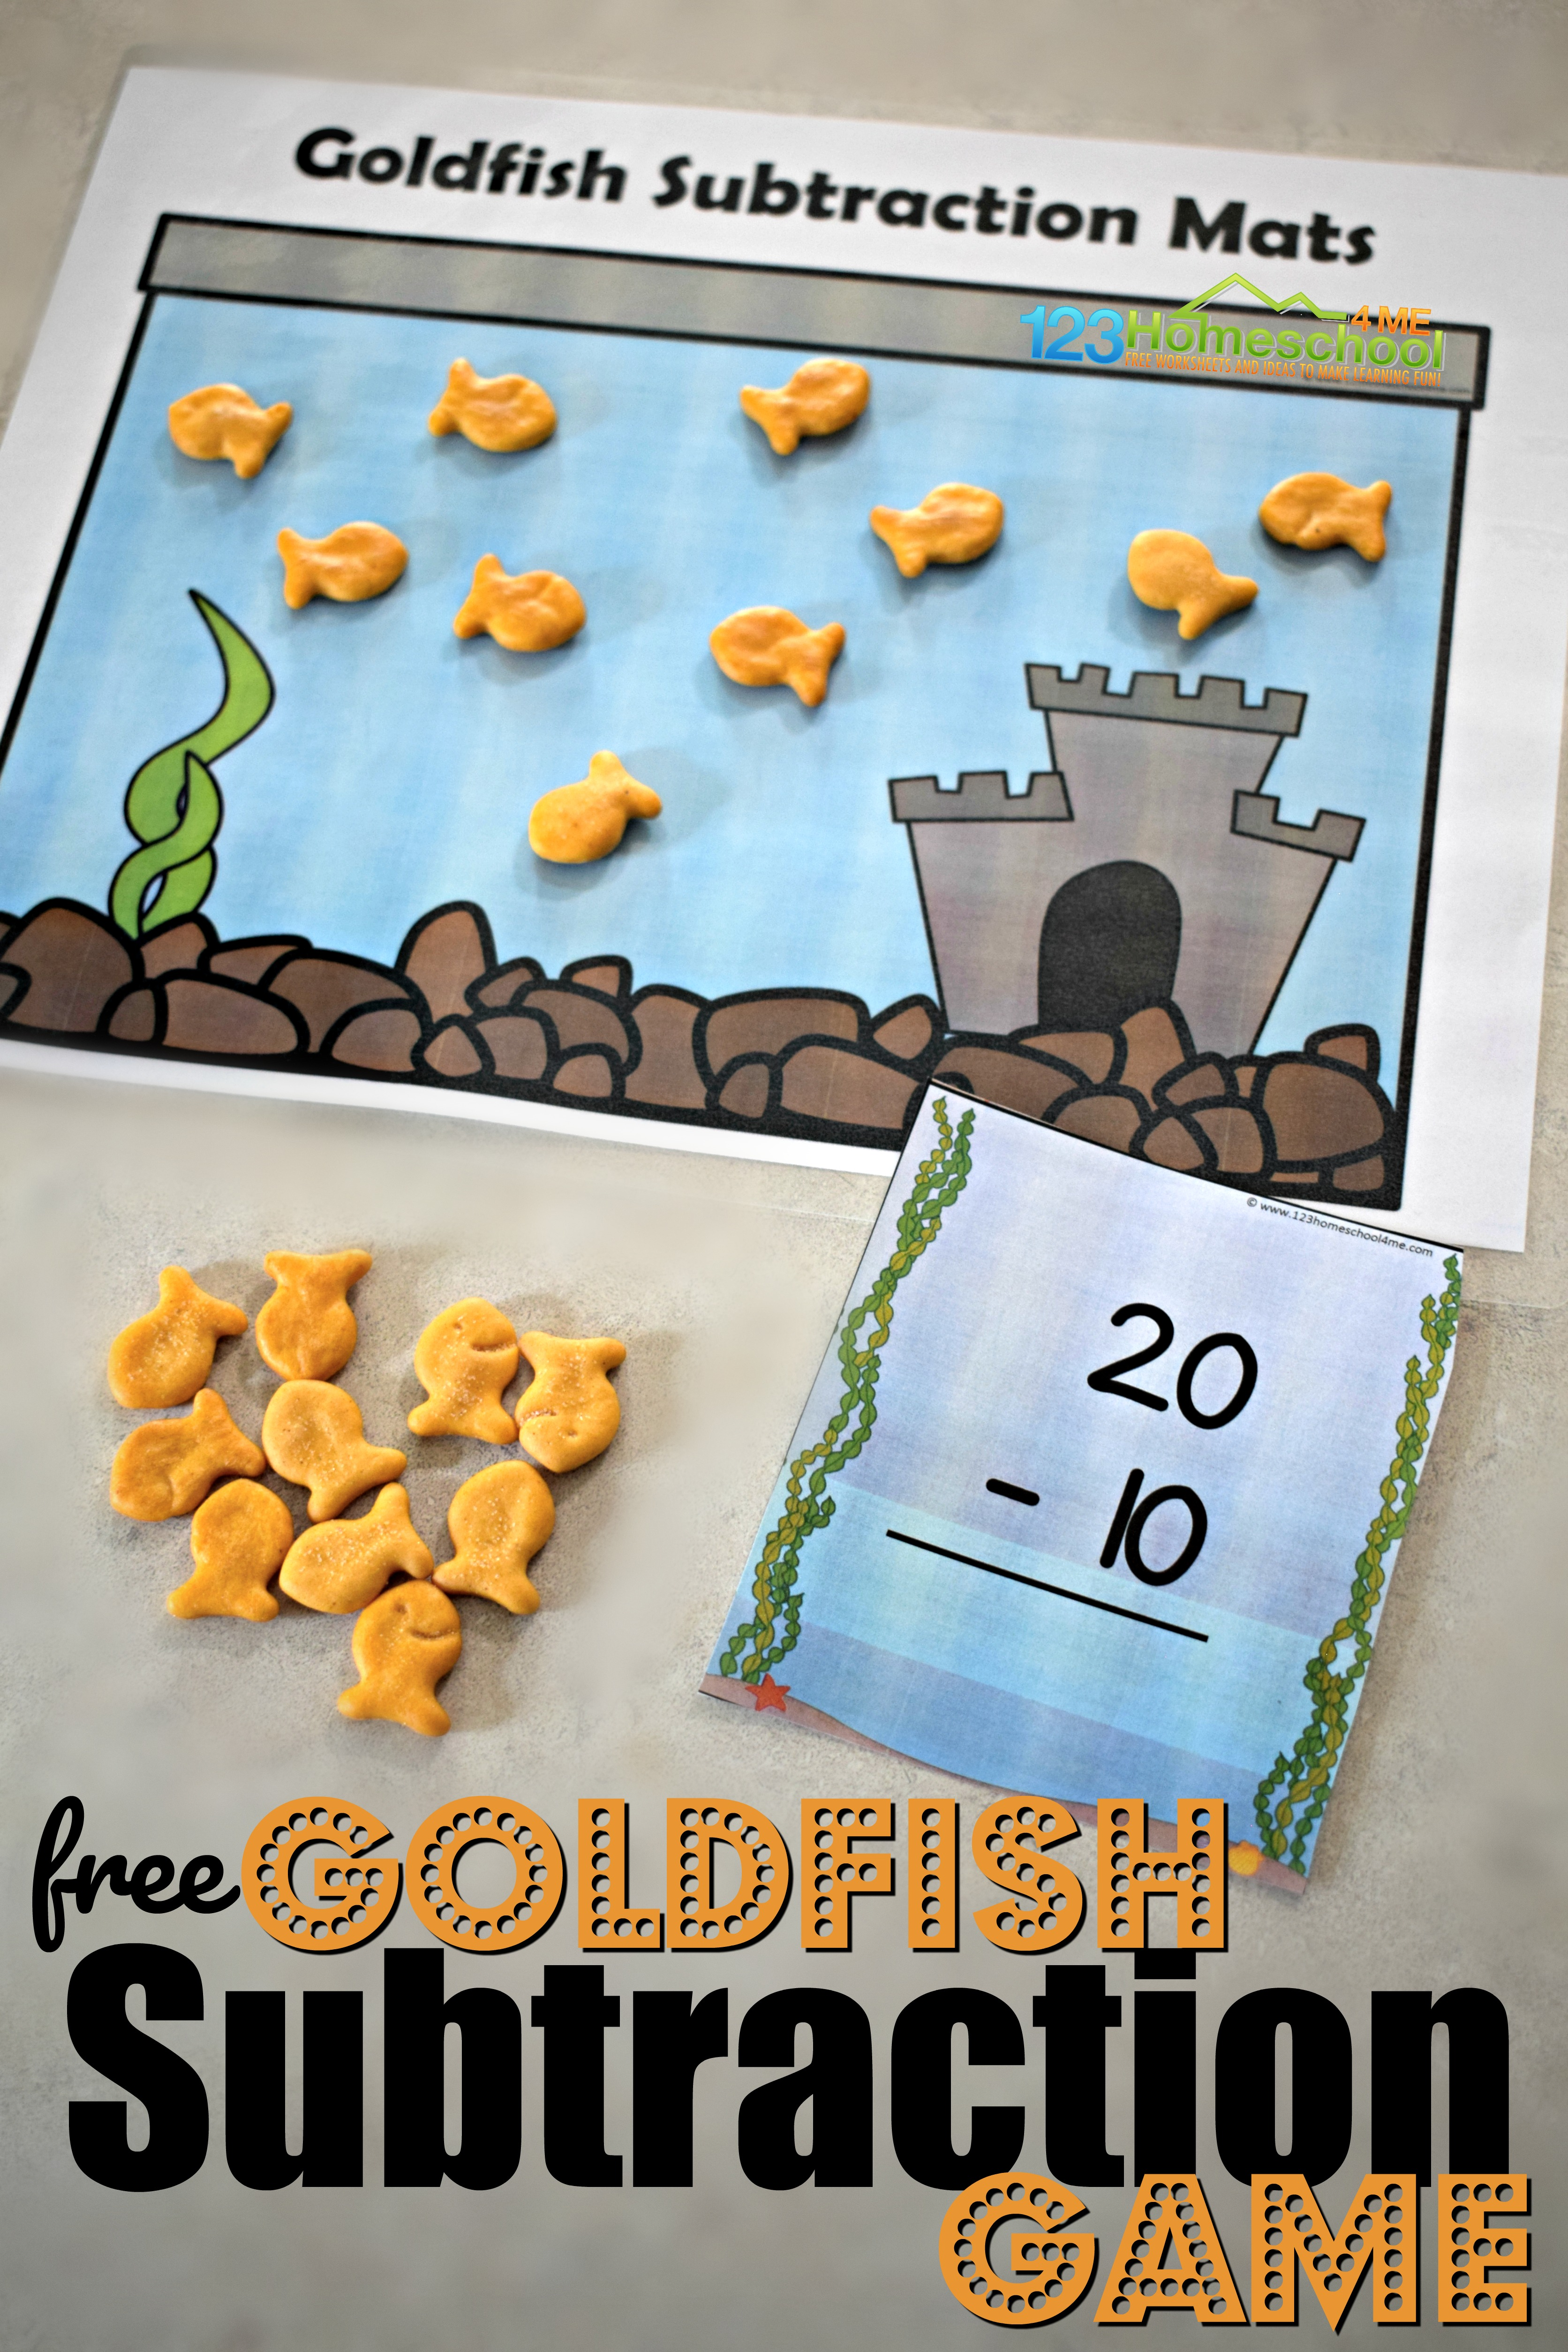 Fun, hands on subtraction game using our free subtraction printable and goldfish